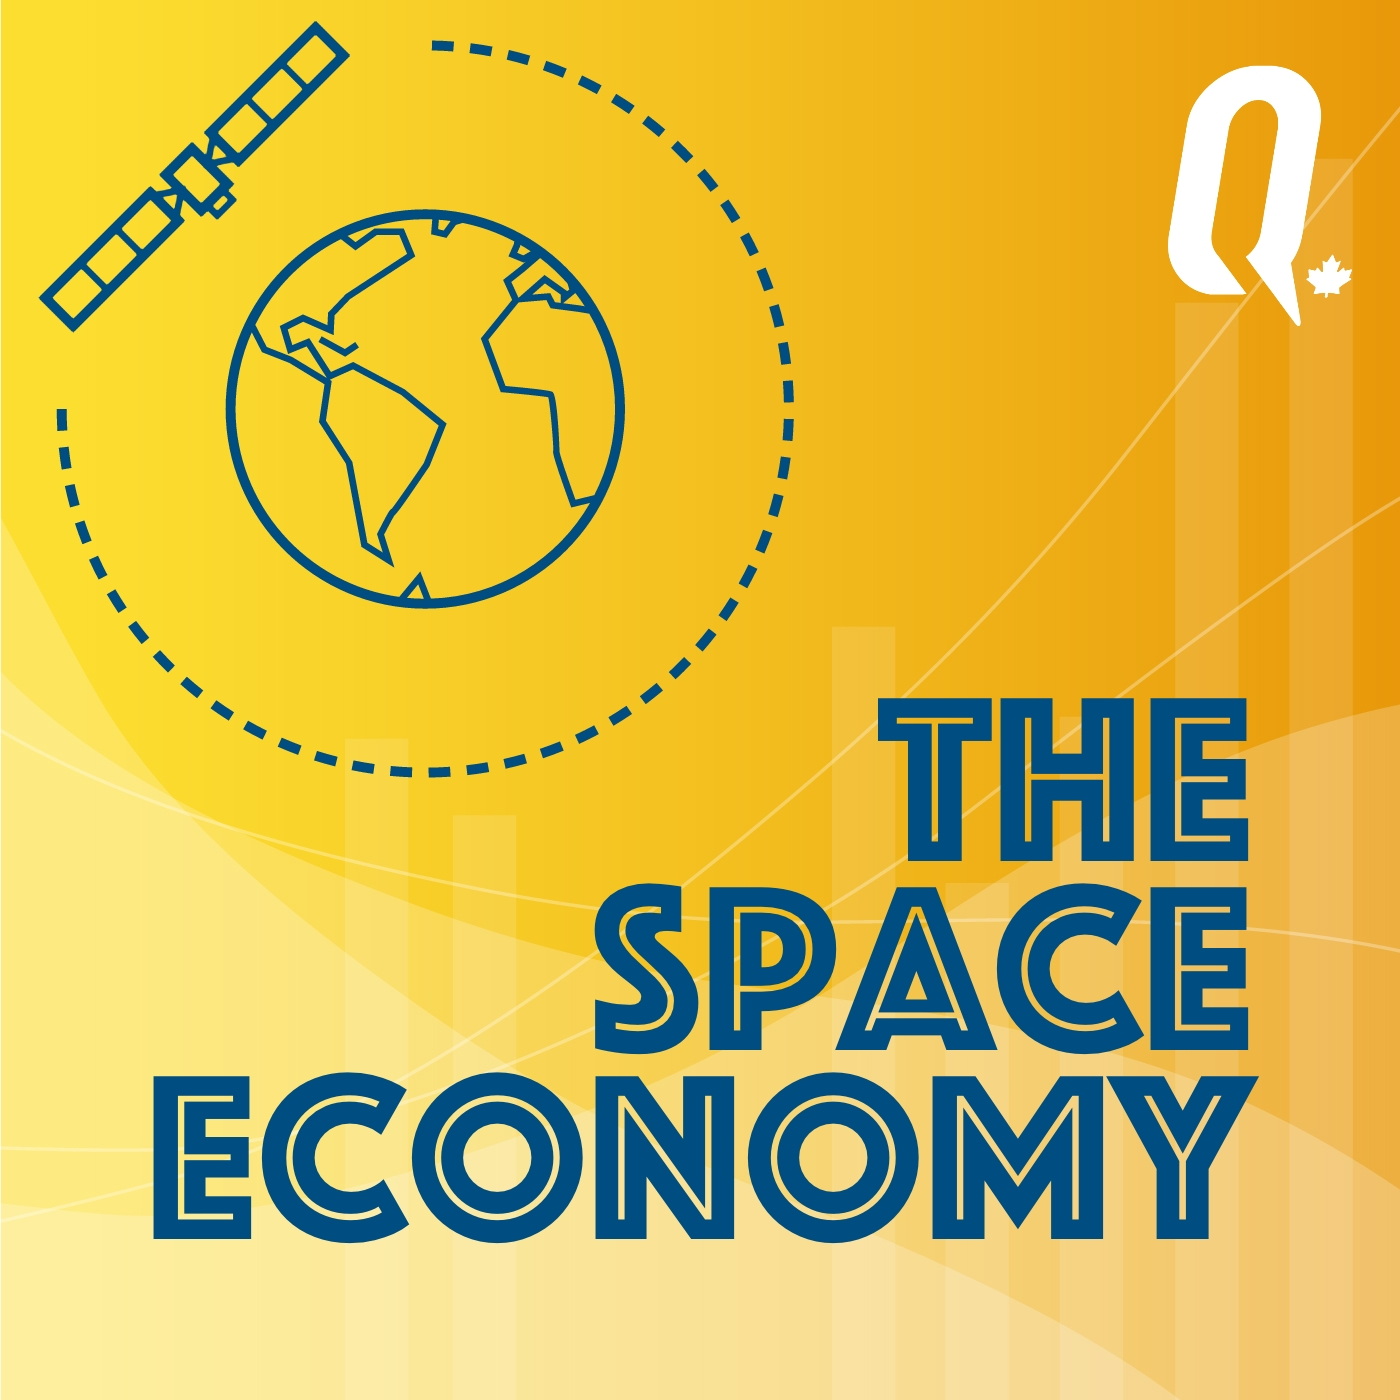 Listen to the Space Economy podcast